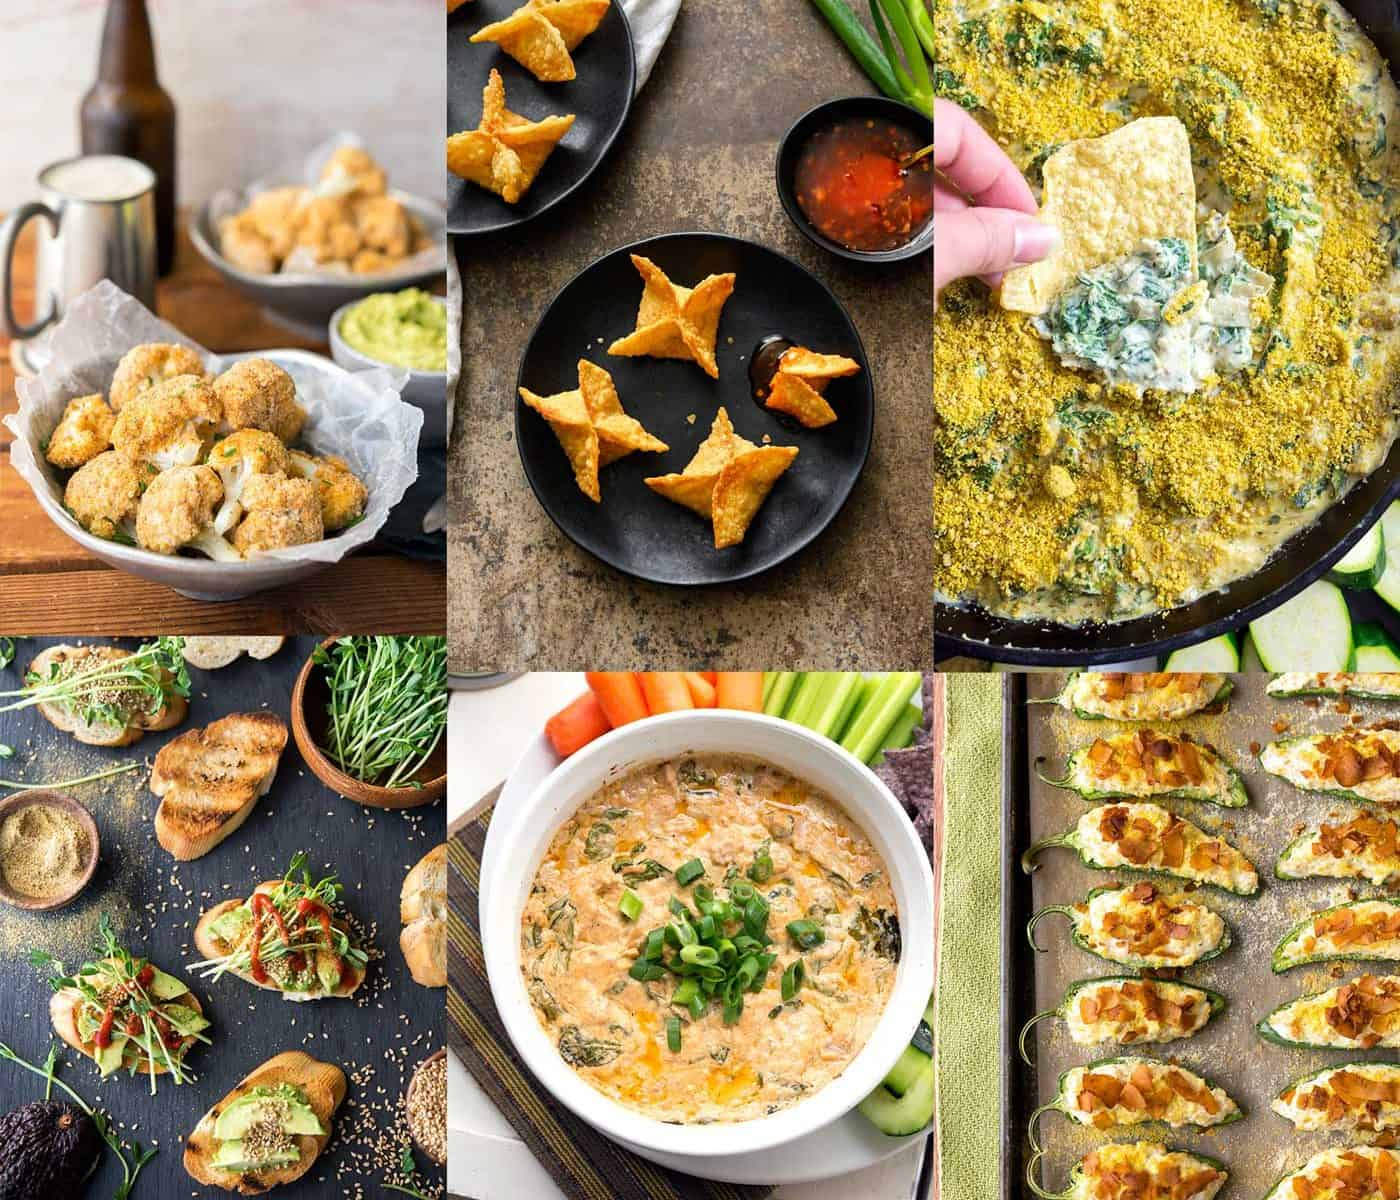 Image collage of several vegan appetizers including crostini, dip, baked cauliflower, and jalapeño poppers